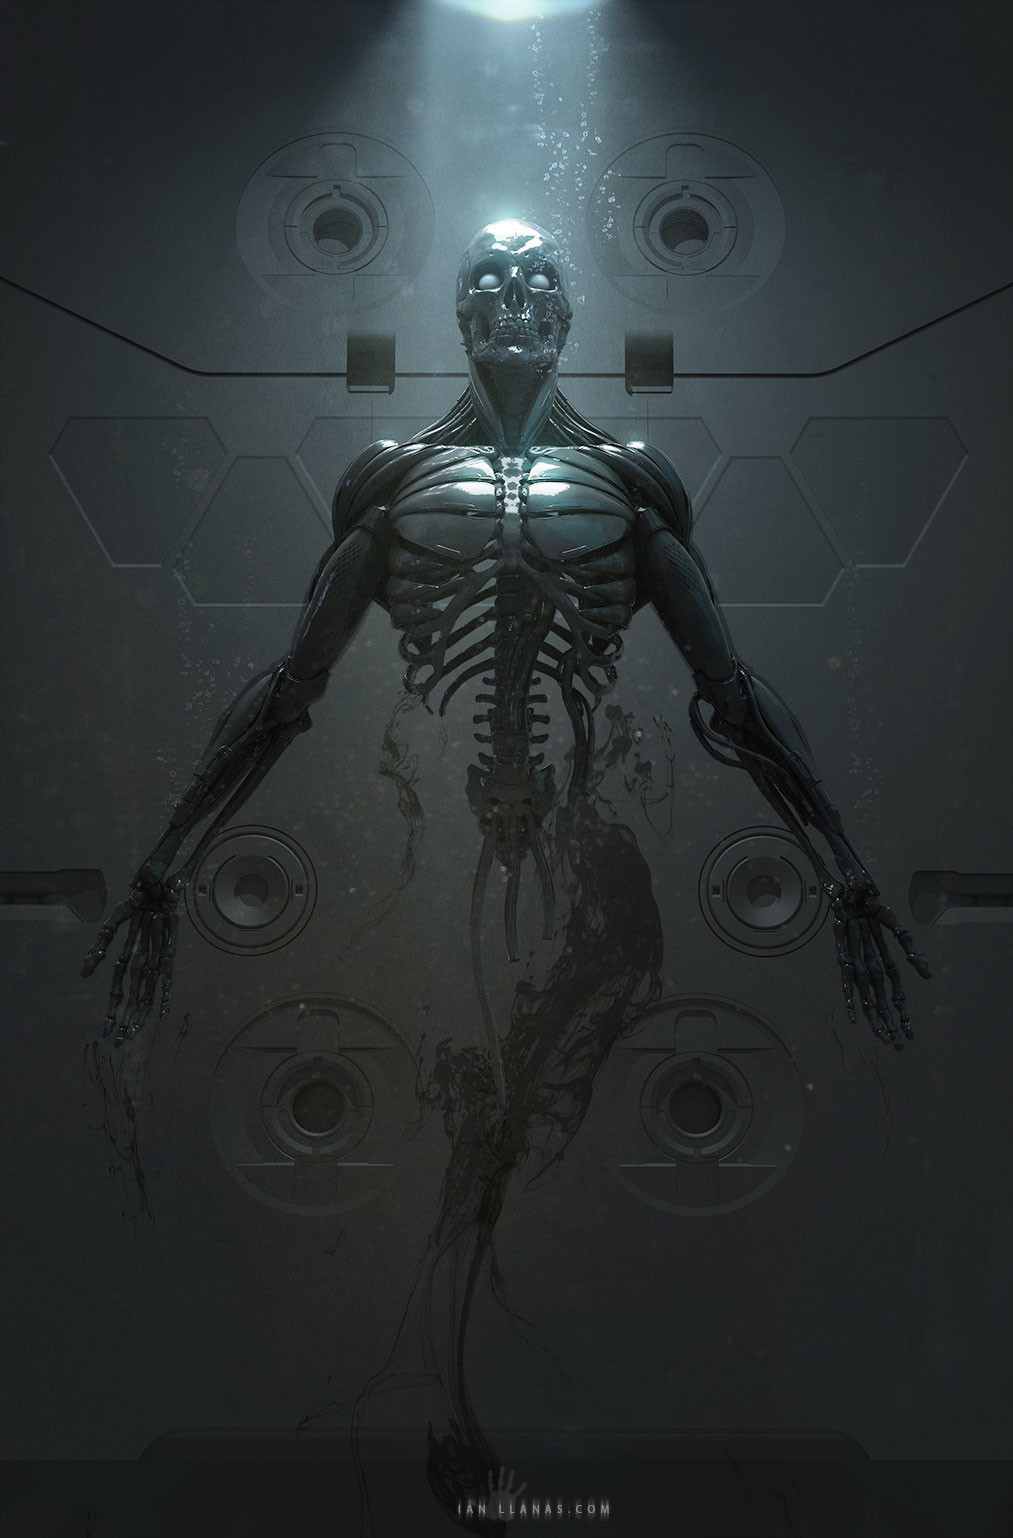 Print available - https://www.inprnt.com/gallery/ianllanas/cyborg-birth/